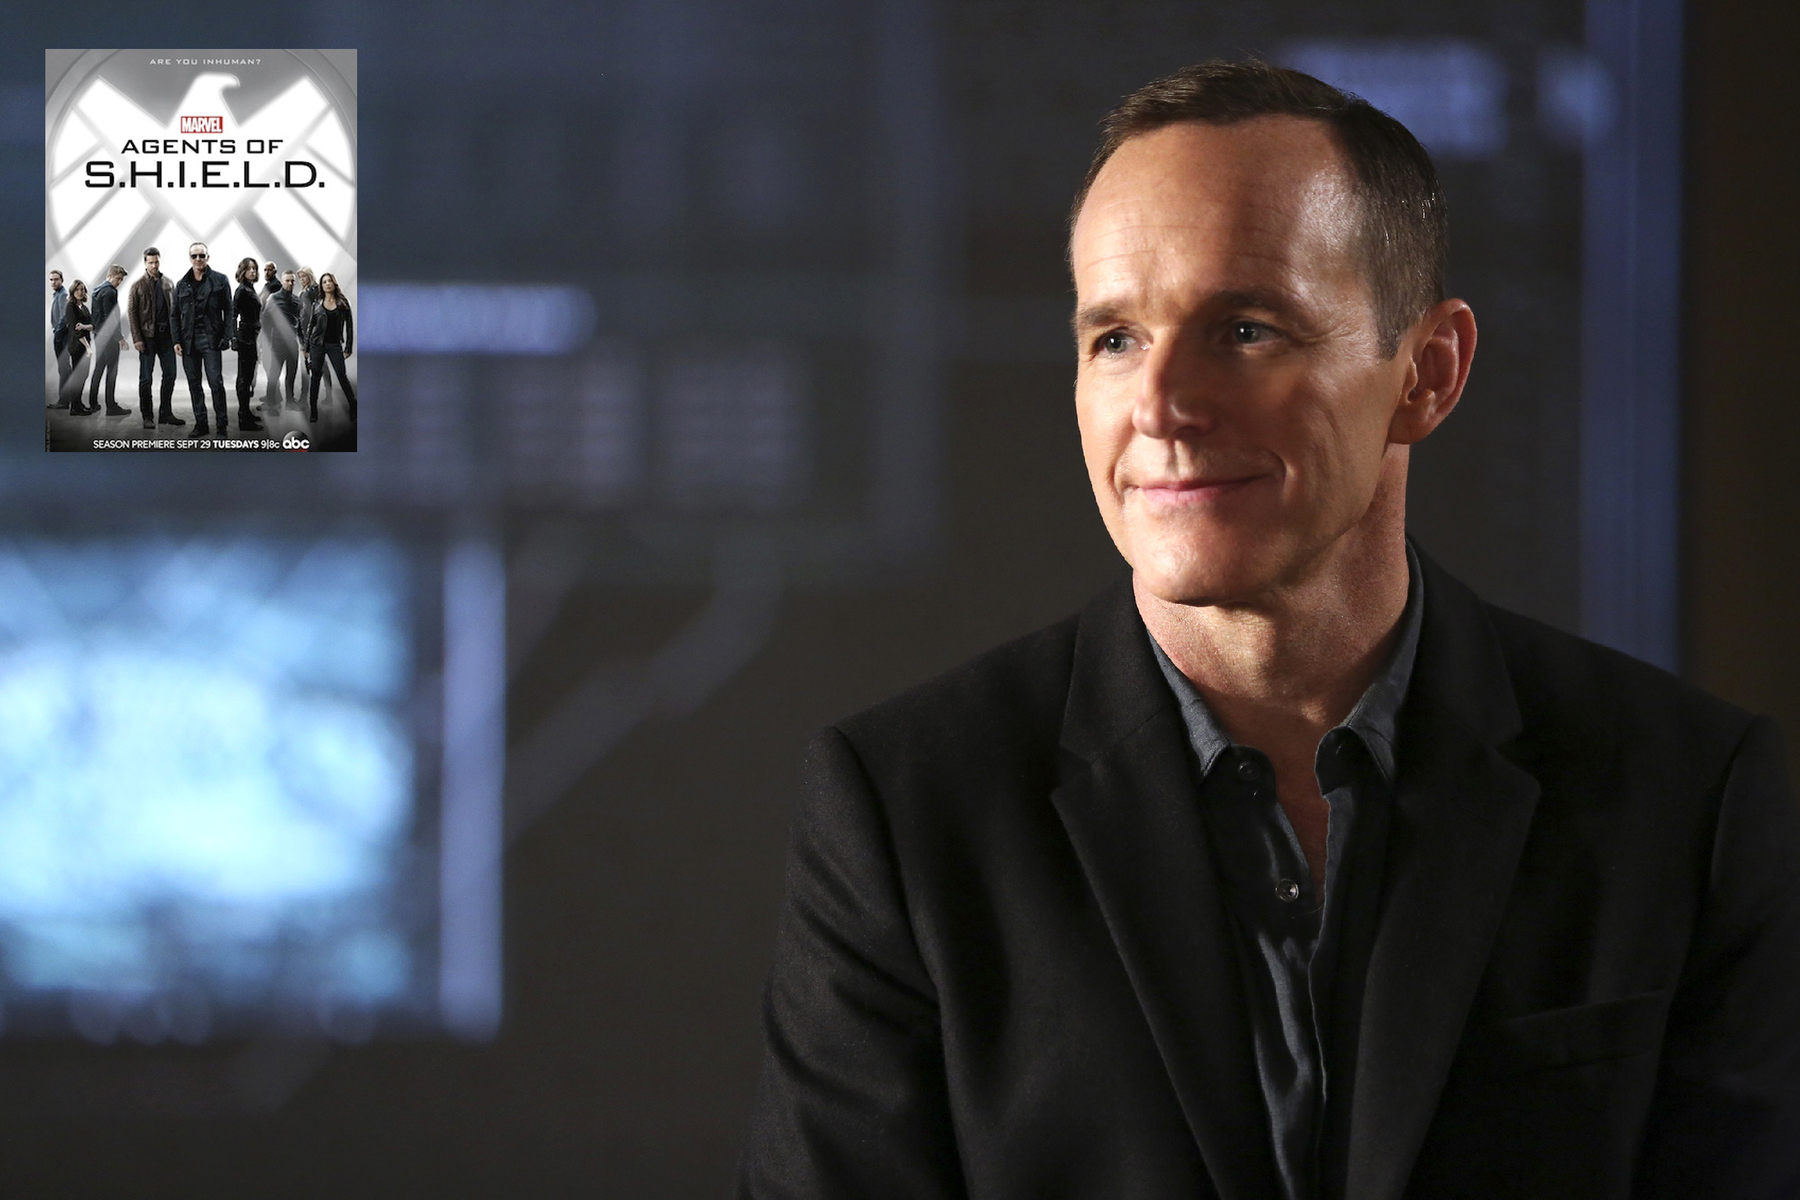 "MARVEL'S AGENTS OF S.H.I.E.L.D. - ""Many Heads, One Tale"" - The S.H.I.E.L.D. team discovers dangerous truths about the ATCU, and Ward's plans to destroy S.H.I.E.L.D. take a surprising twist, on ""Marvel's Agents of S.H.I.E.L.D.,"" TUESDAY, NOVEMBER 17 (9:00-10:00 p.m., ET) on the ABC Television Network. (ABC/John Fleenor)